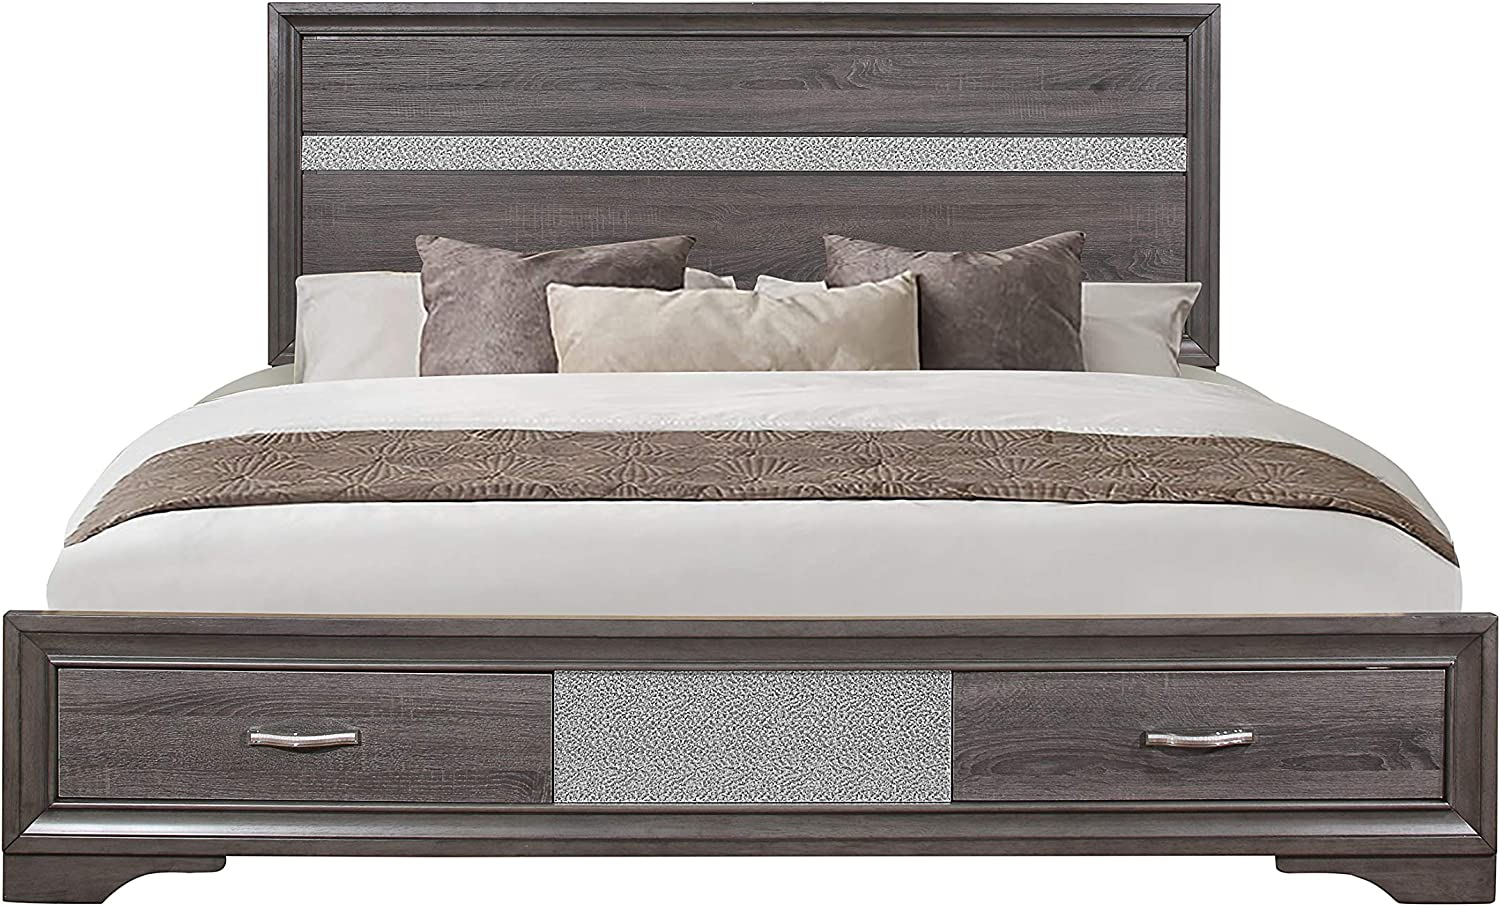 Global Furniture USA Seville Panel Bed in Gray (Queen: 83 in. L x 64 in. W x 50 in. H)